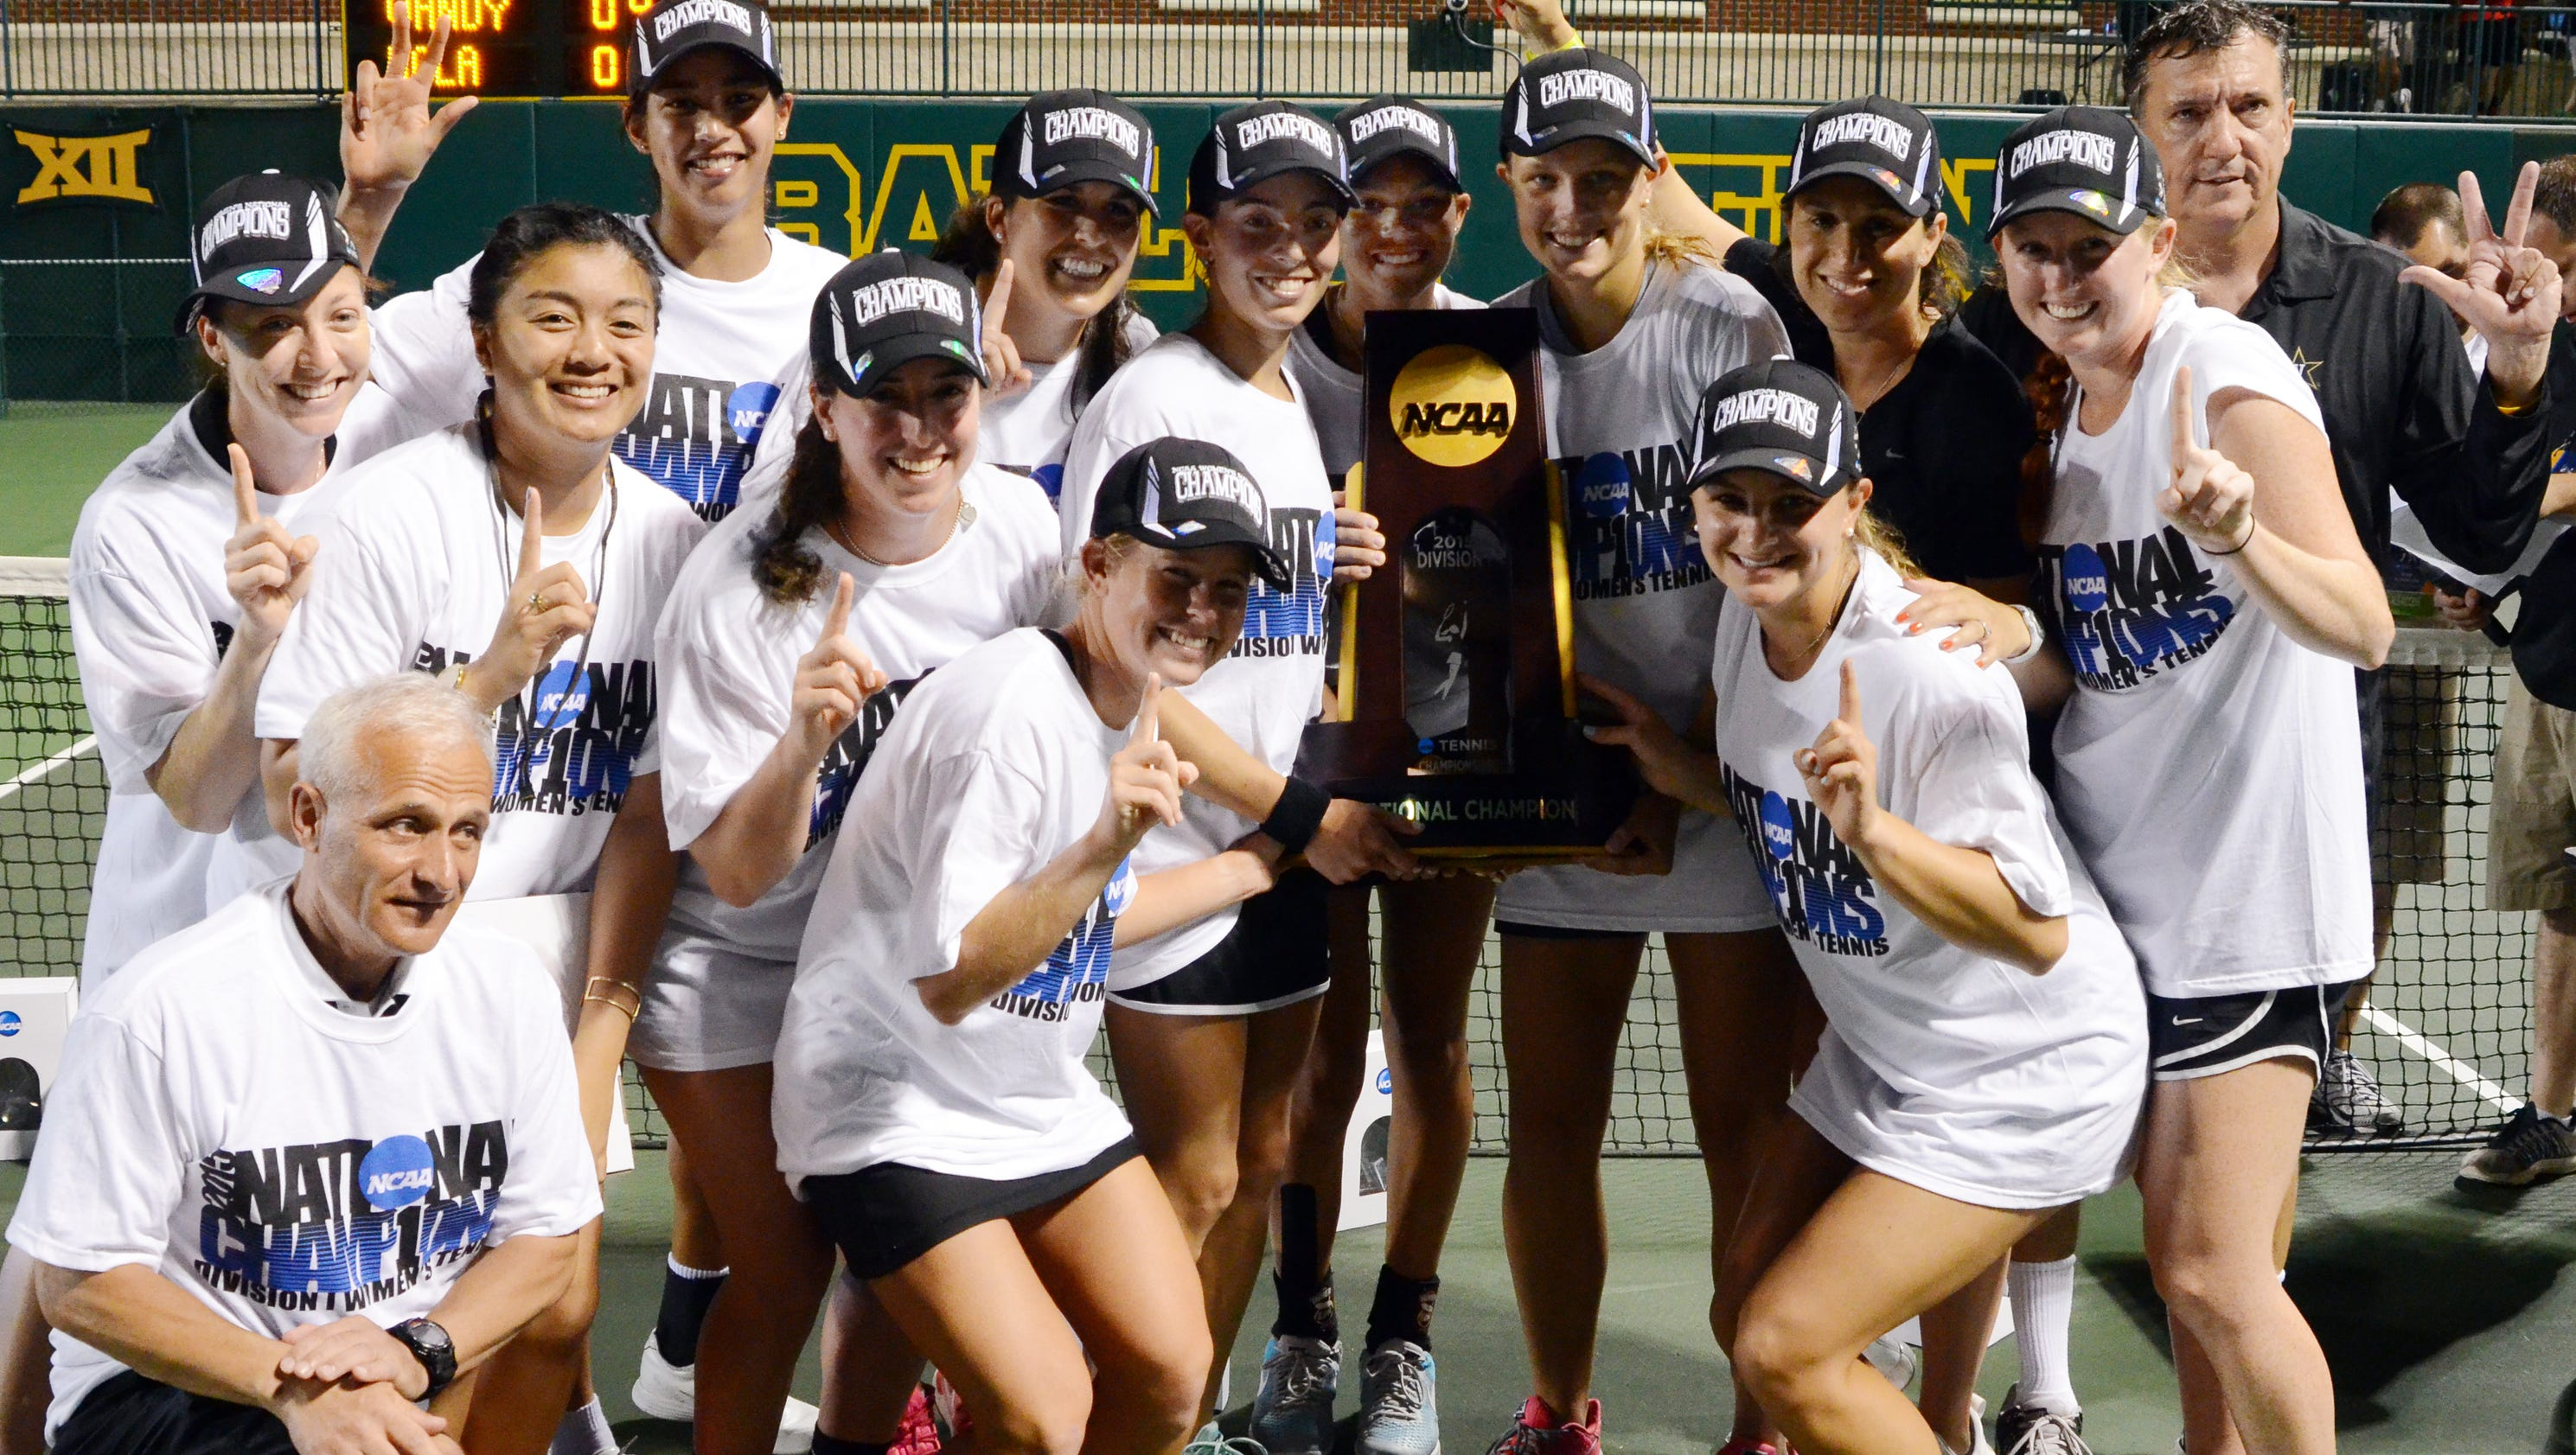 635890785561869547-vandy-tennis-ncaa-title